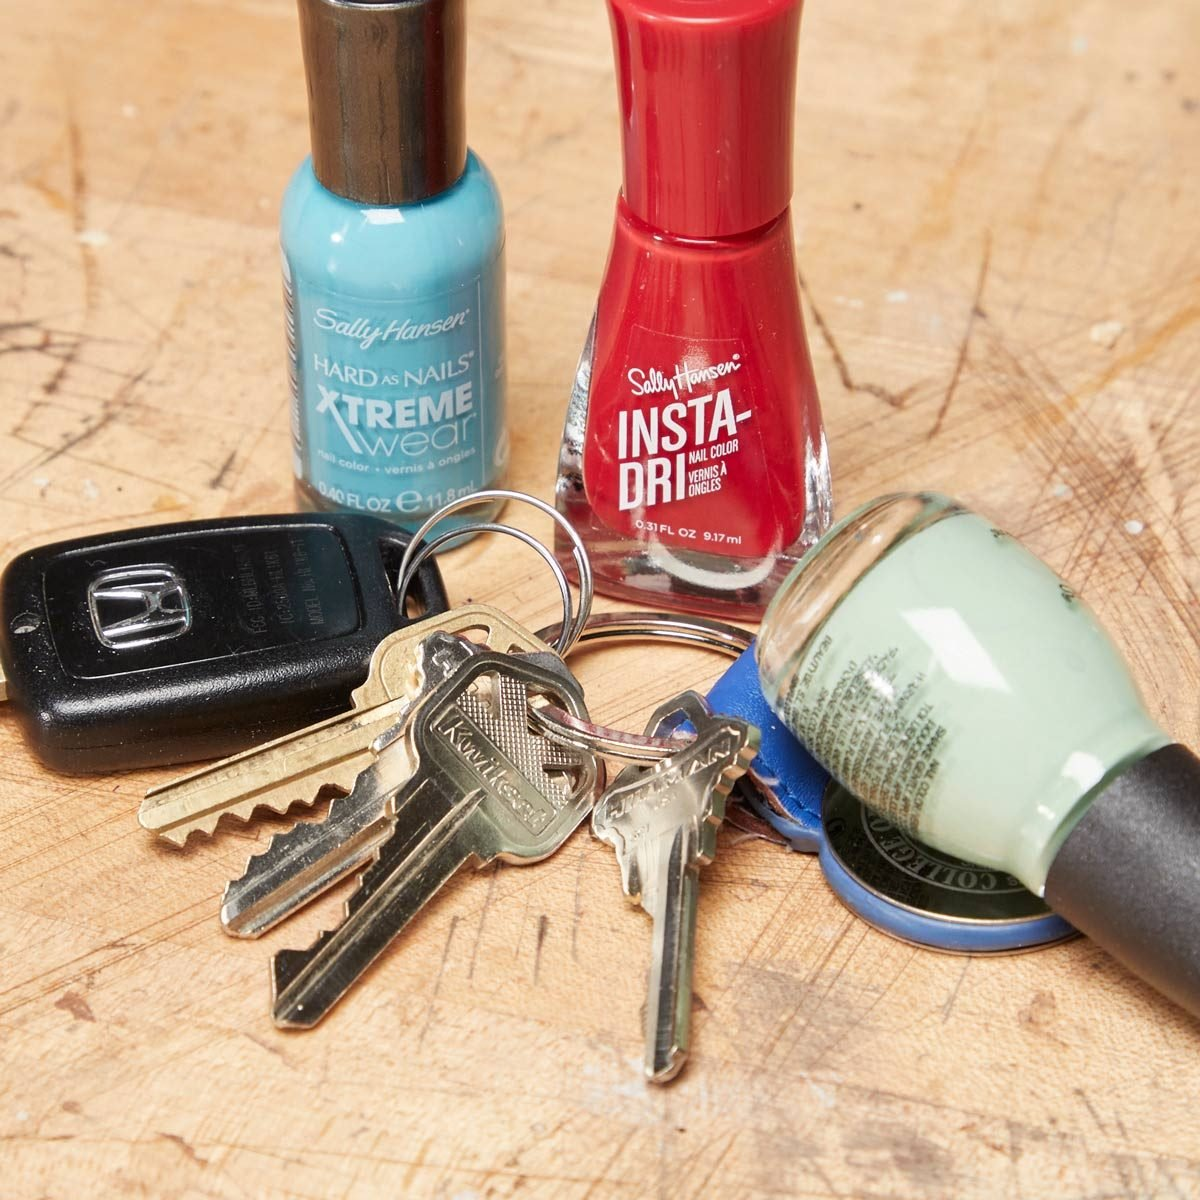 The Easiest Way to Color-Code Your Keys | The Family Handyman